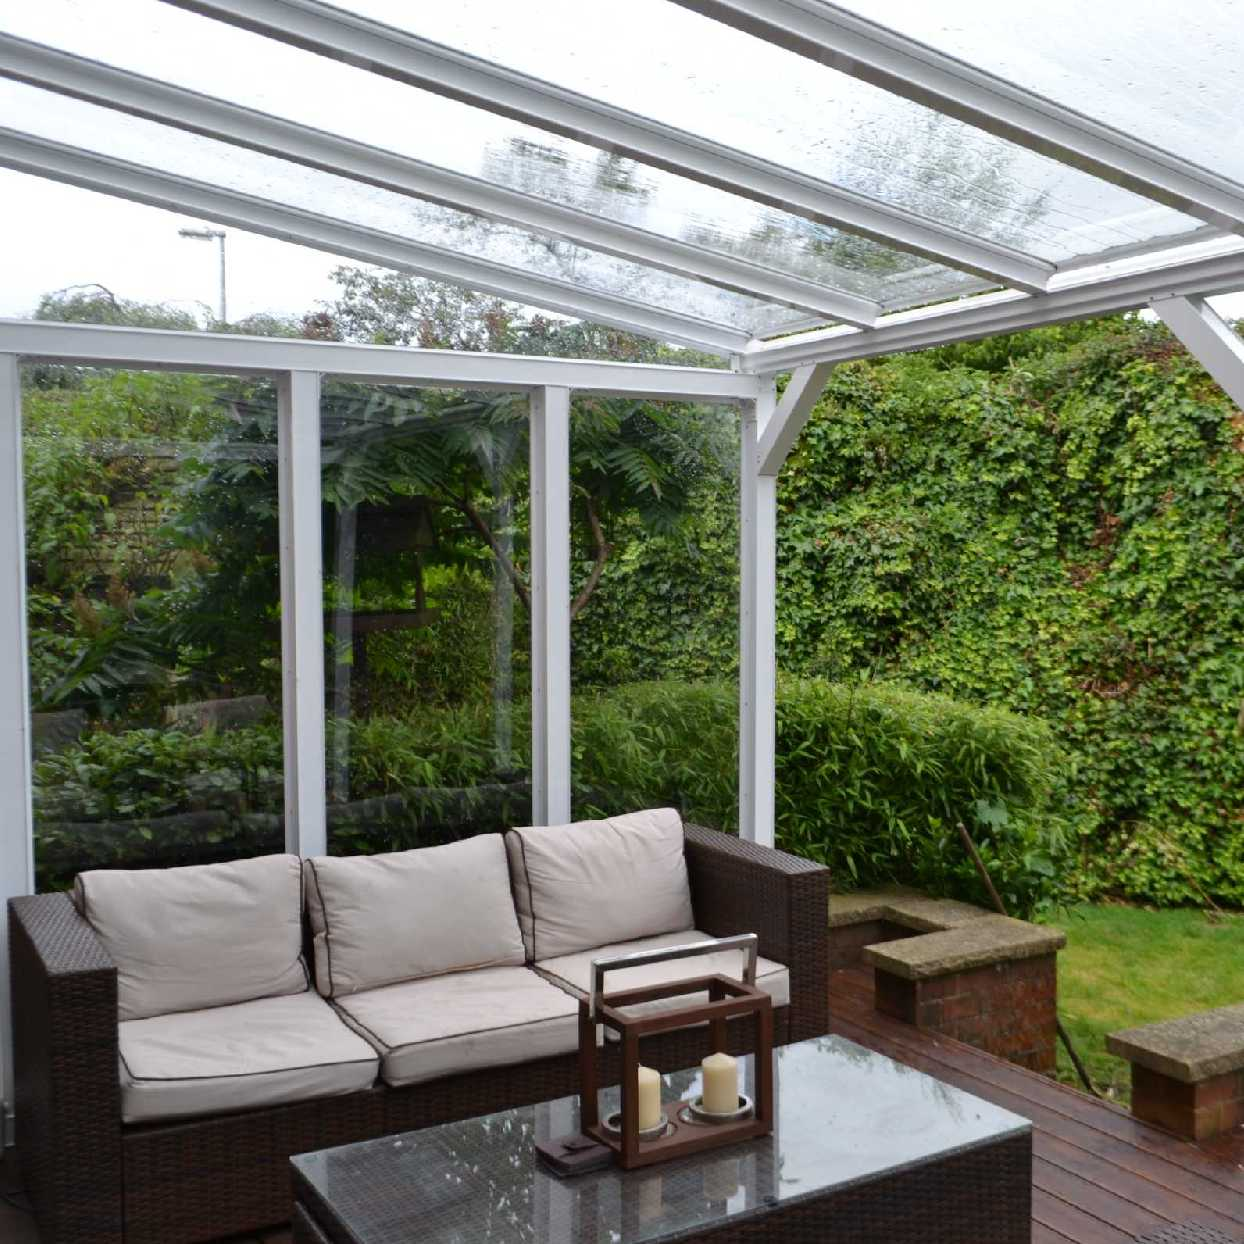 Omega Smart Lean-To Canopy with 6mm Glass Clear Plate Polycarbonate Glazing - 8.4m (W) x 4.0m (P), (4) Supporting Posts